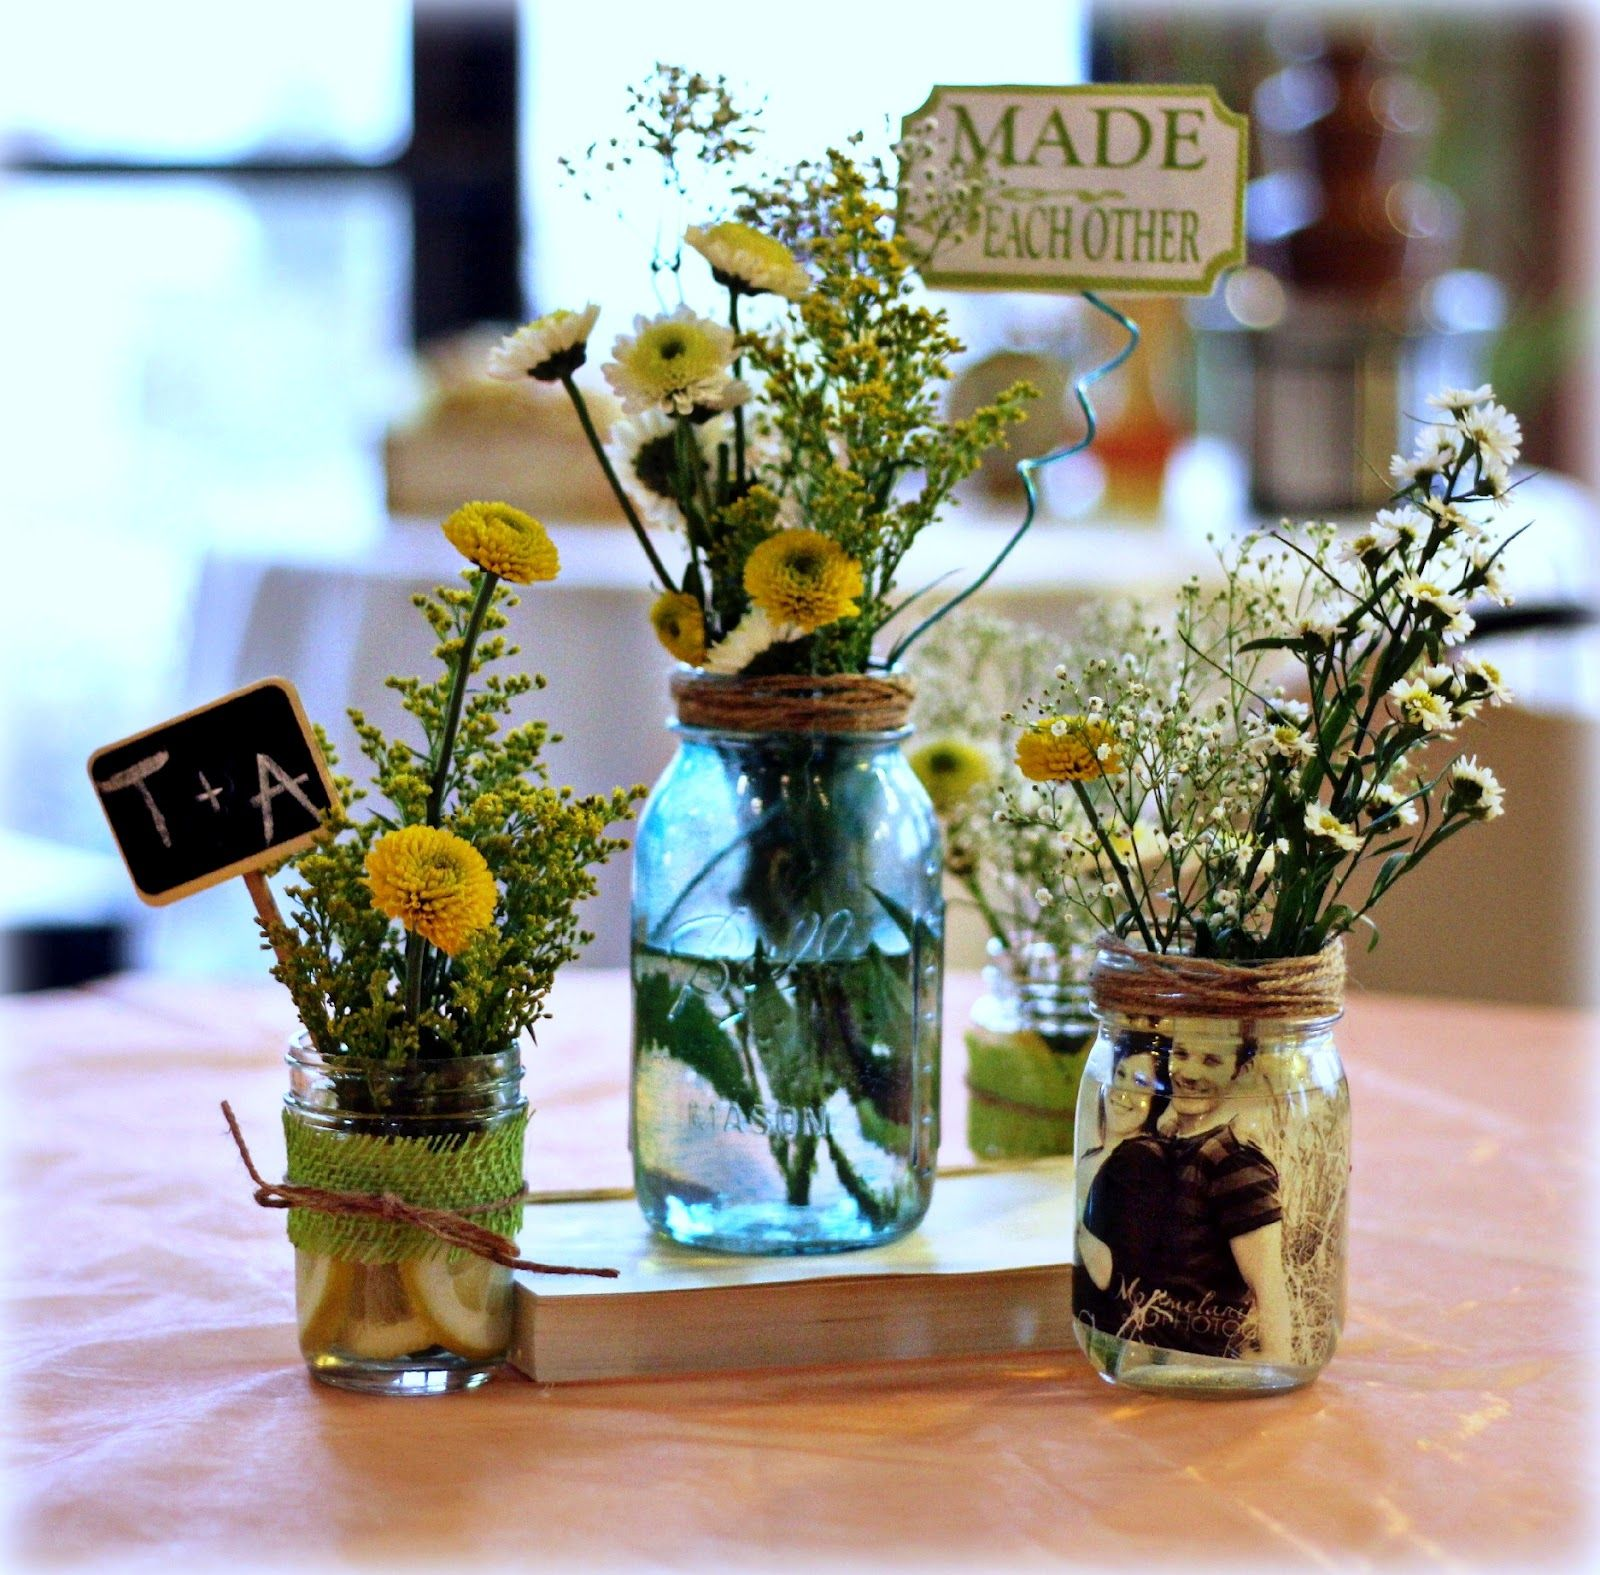 Wedding Decorations Using Mason Jars In Case The Mason Jars With Lights In Them Are Used Elsewhere In